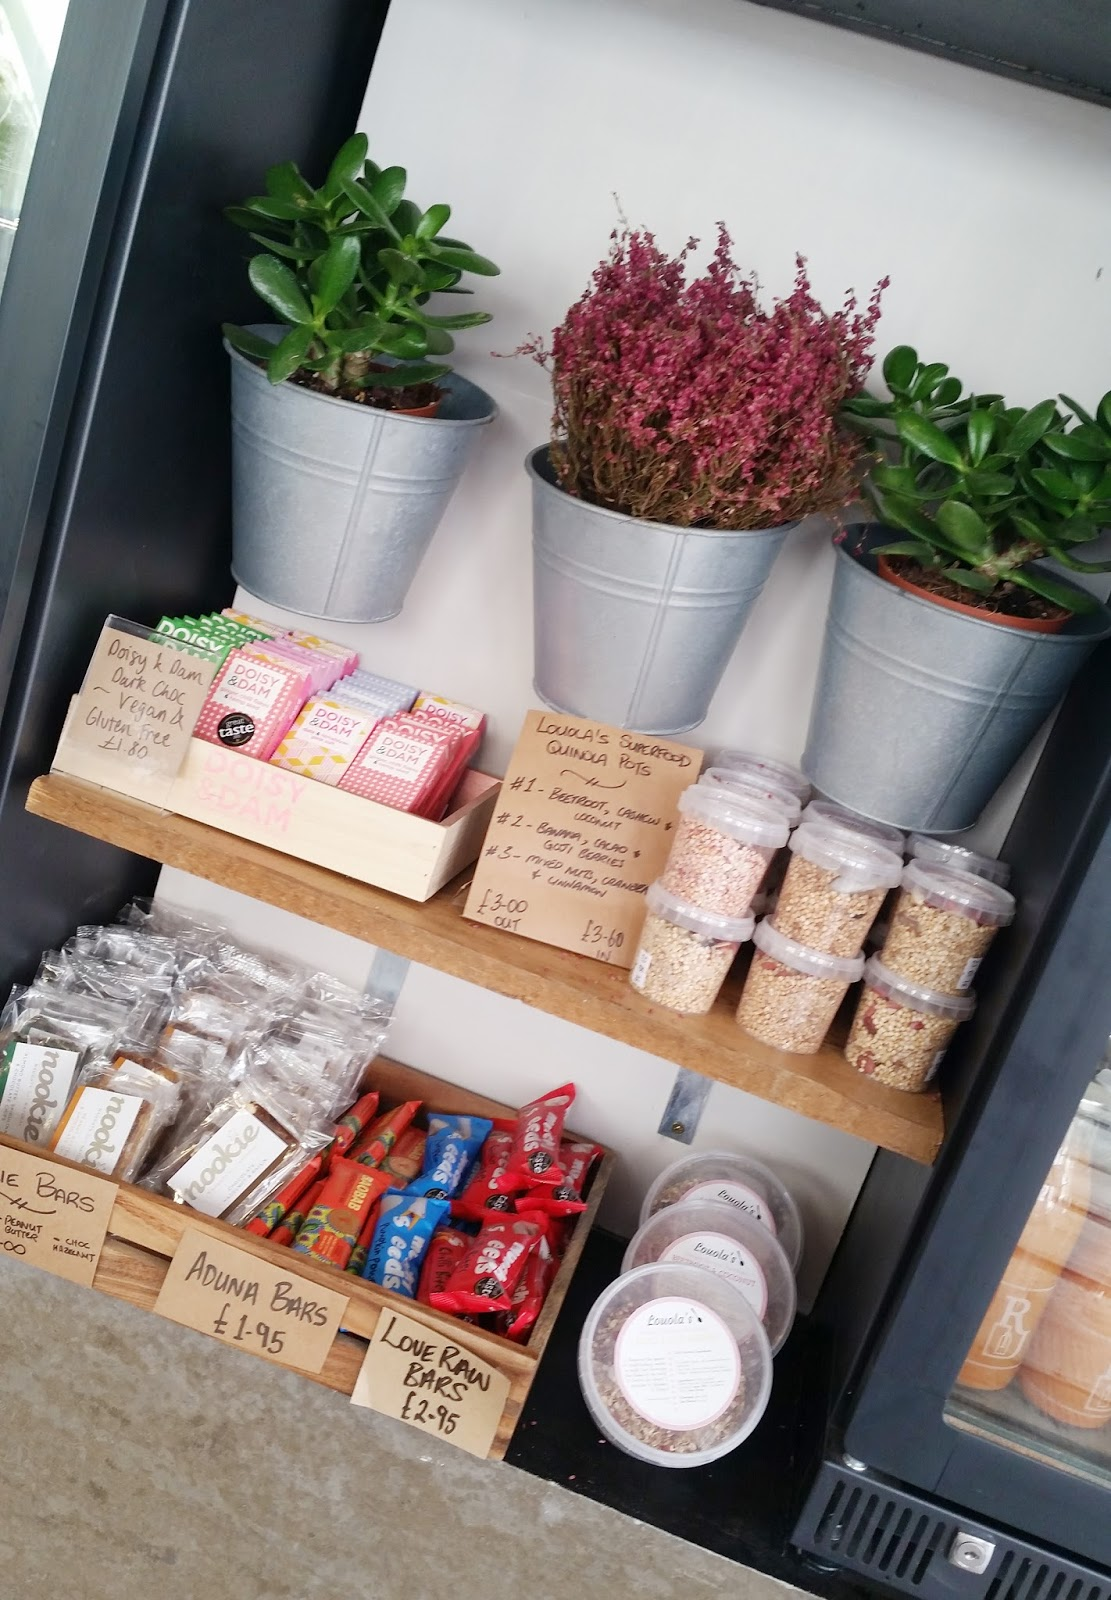 Roots Juicery juice bar Fitzrovia London review - healthy snacks